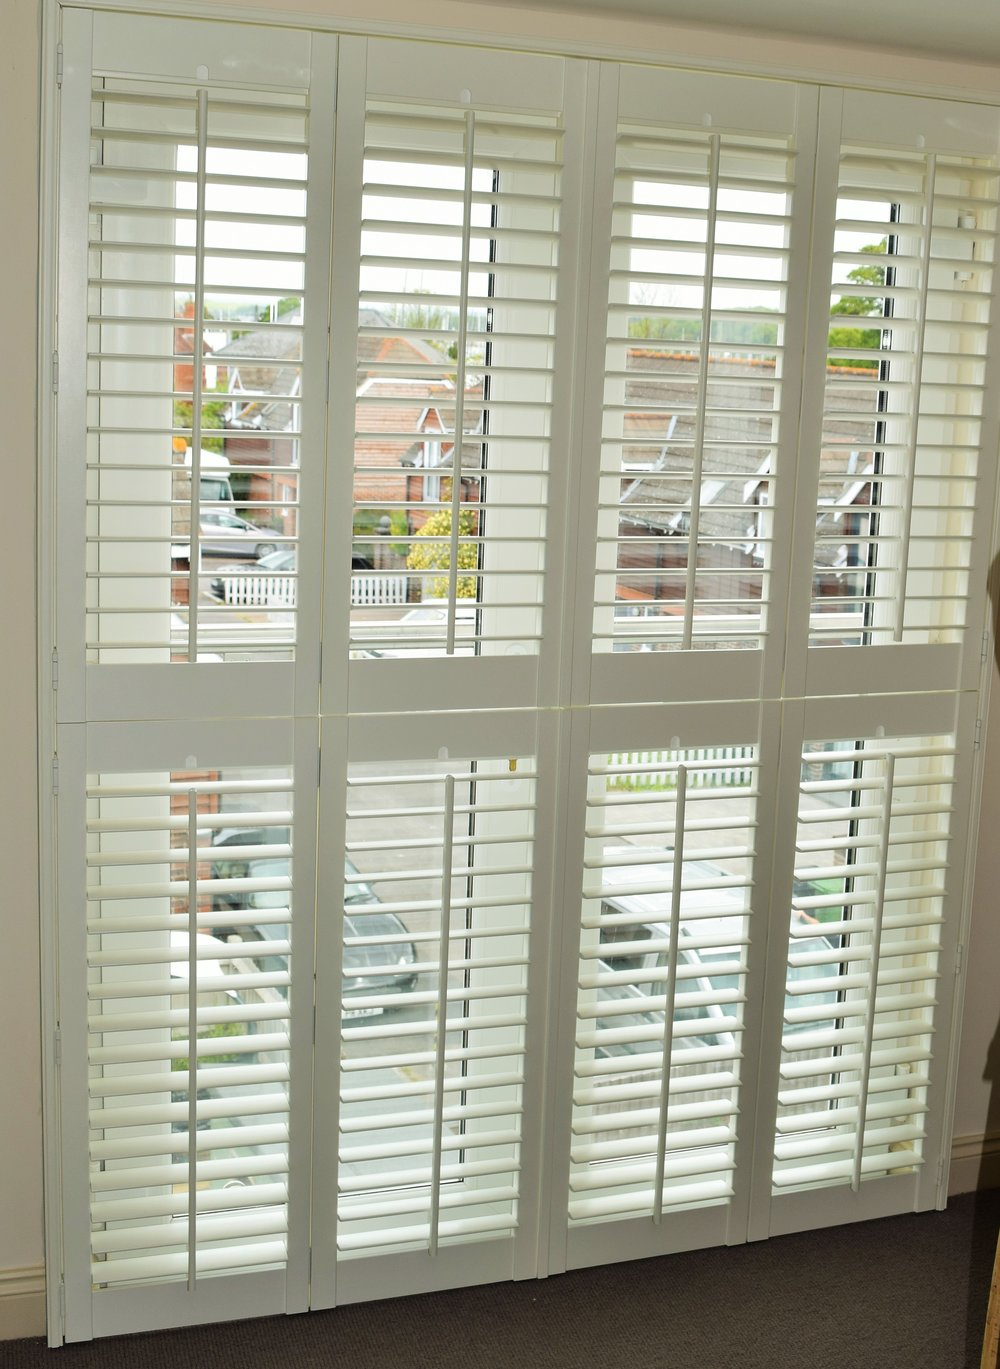 Tier on tier interior shutters.JPG